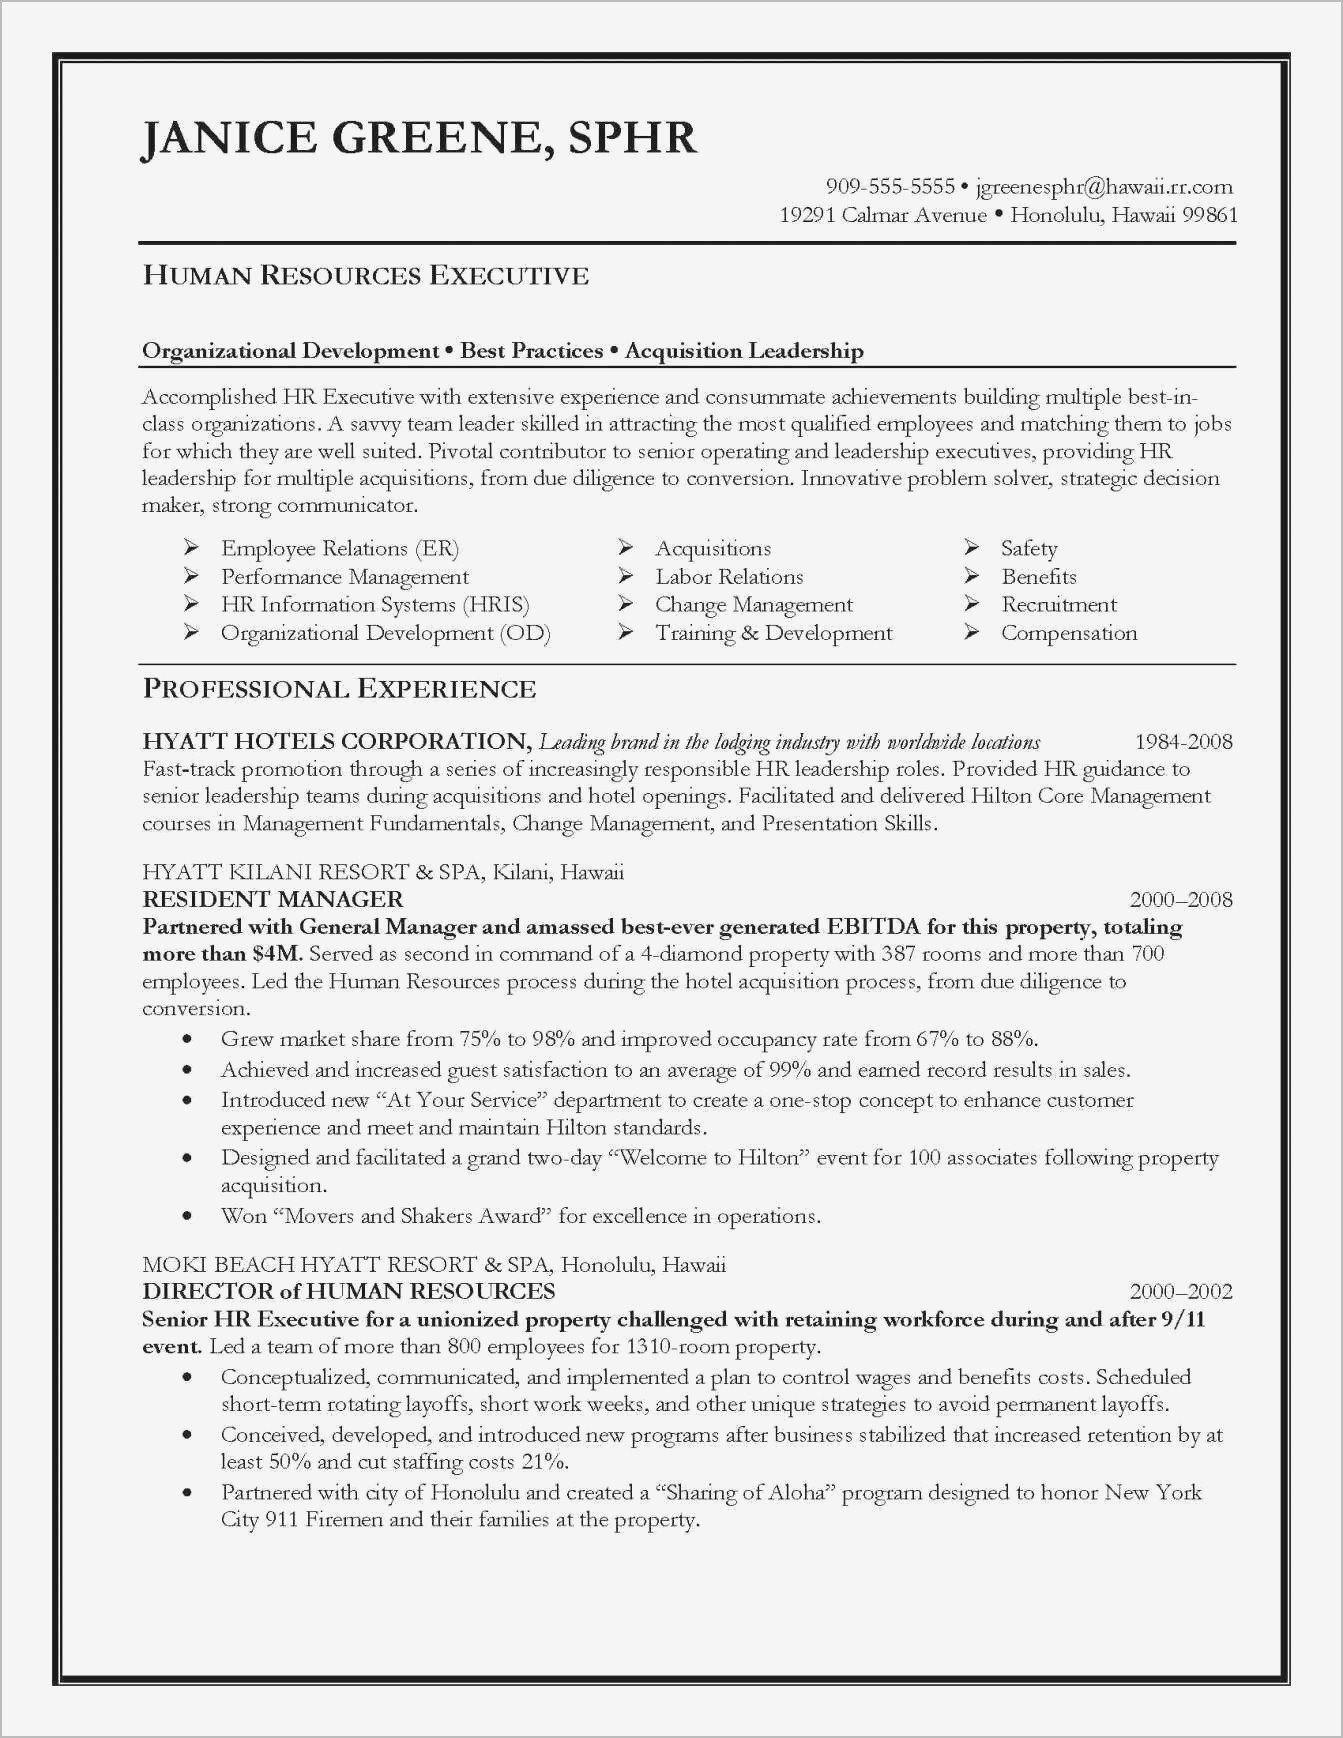 Best Profile for Resume - Resume Professional Profile Lovely Summary A Resume Lovely Best